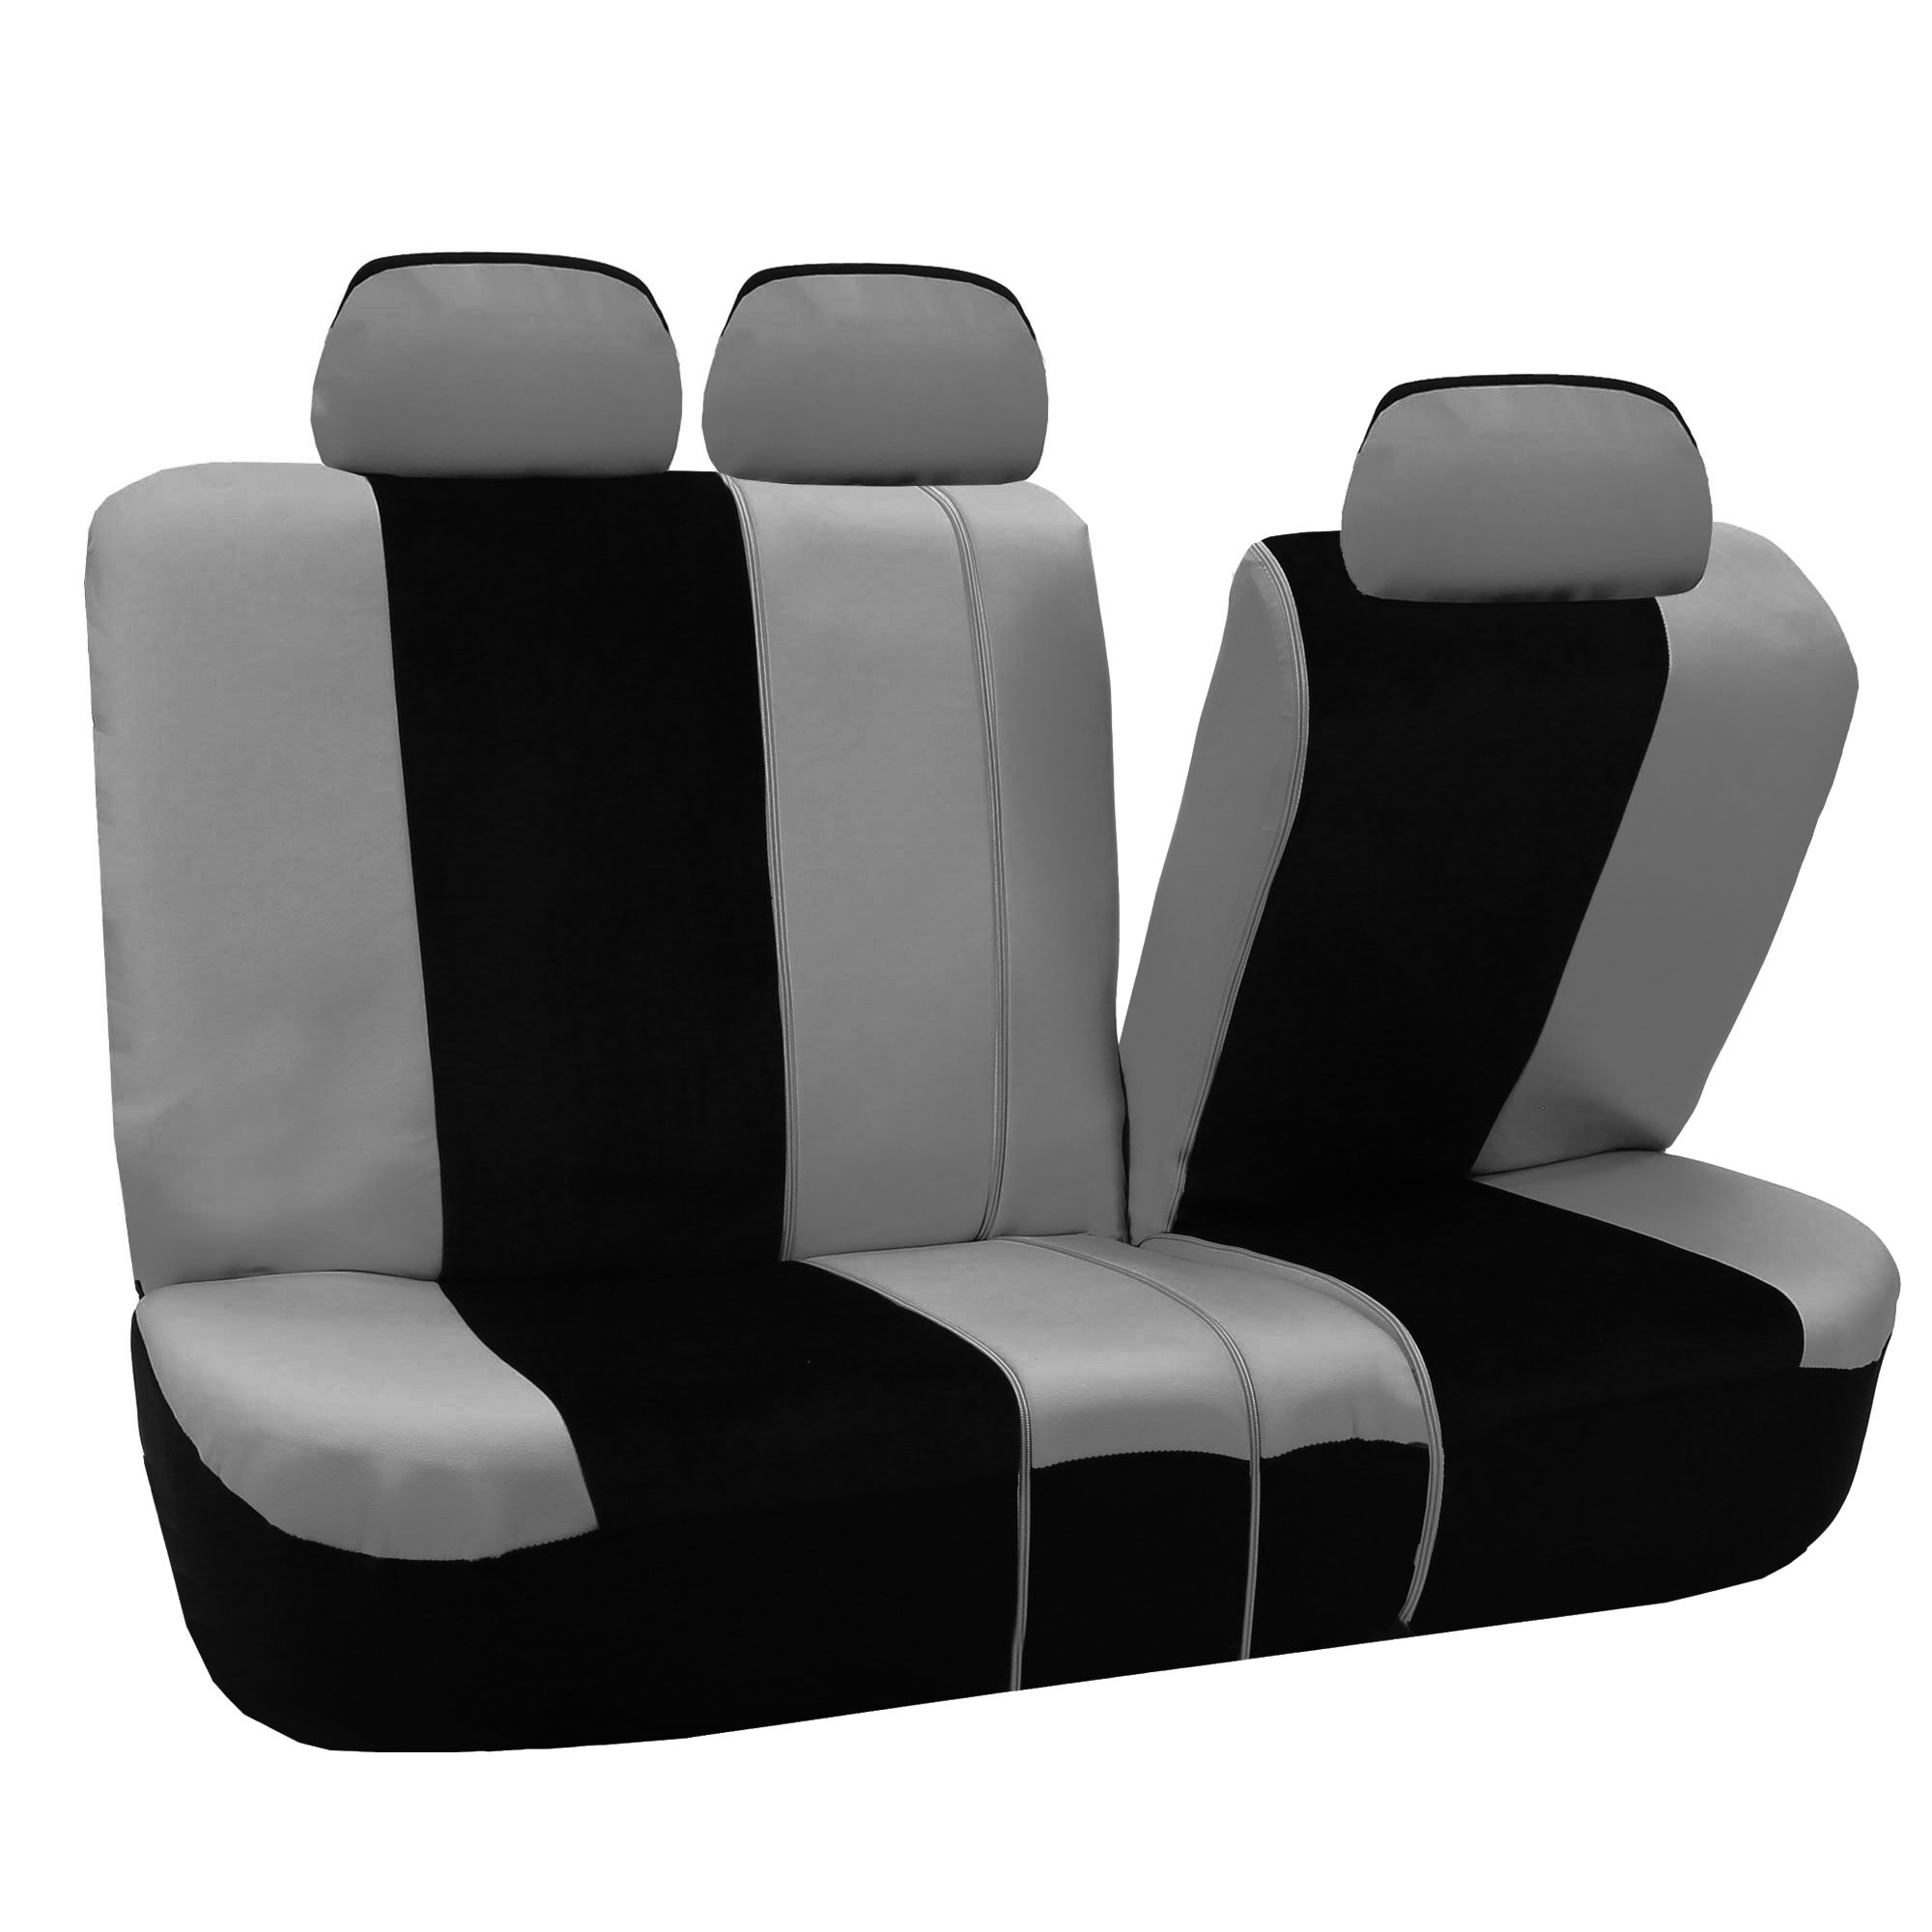 chair cover velour director covers big w leather car seat sport luxury top quality ebay